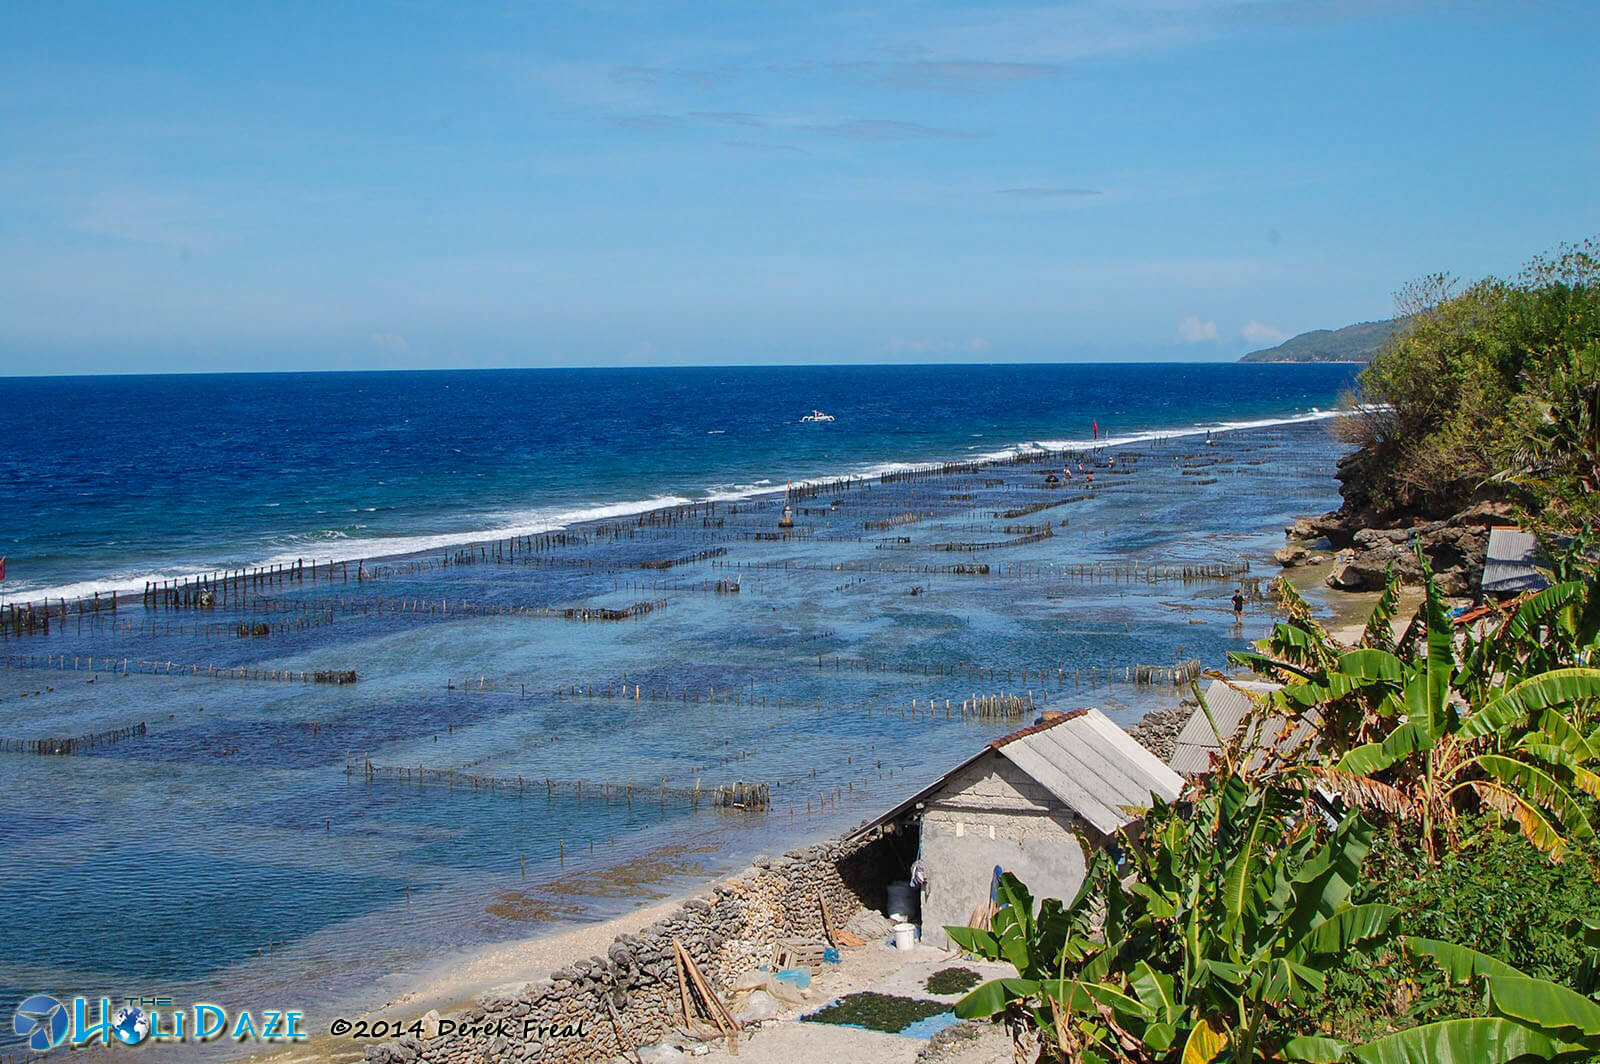 Seaweed farms along the coast of Nusa Penida Island, near Bali, Indonesia